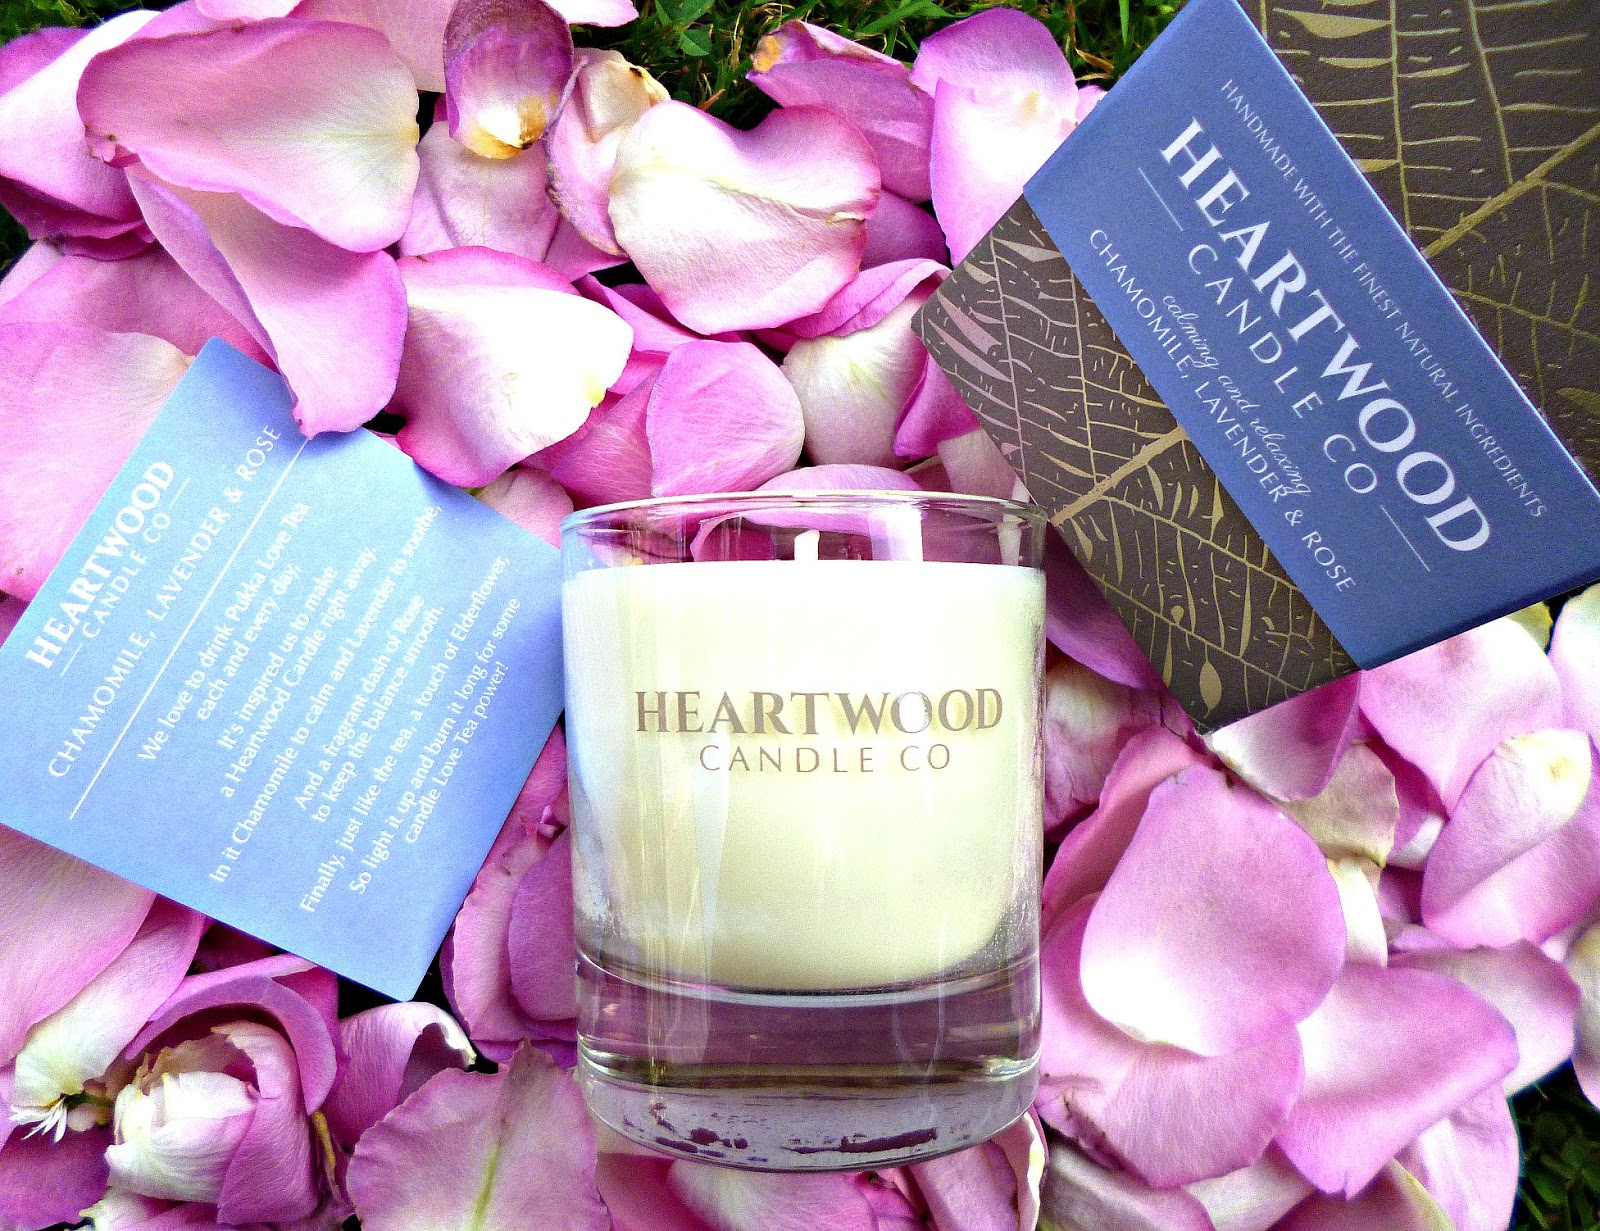 Heartwood candle company Chamomile, lavender and rose candle